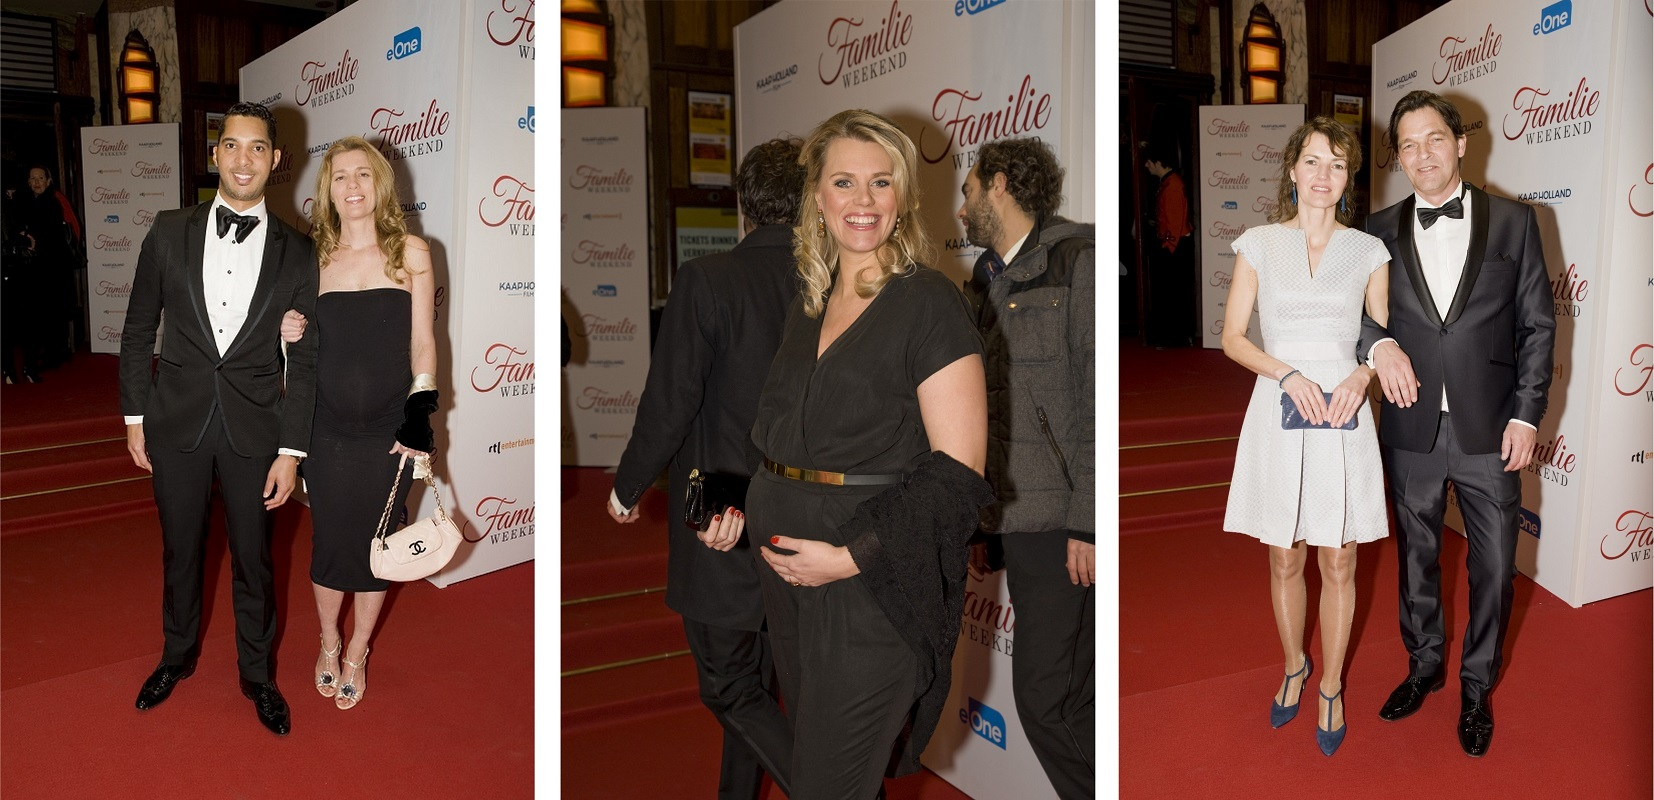 Premiere Familieweekend Glamourland (5)